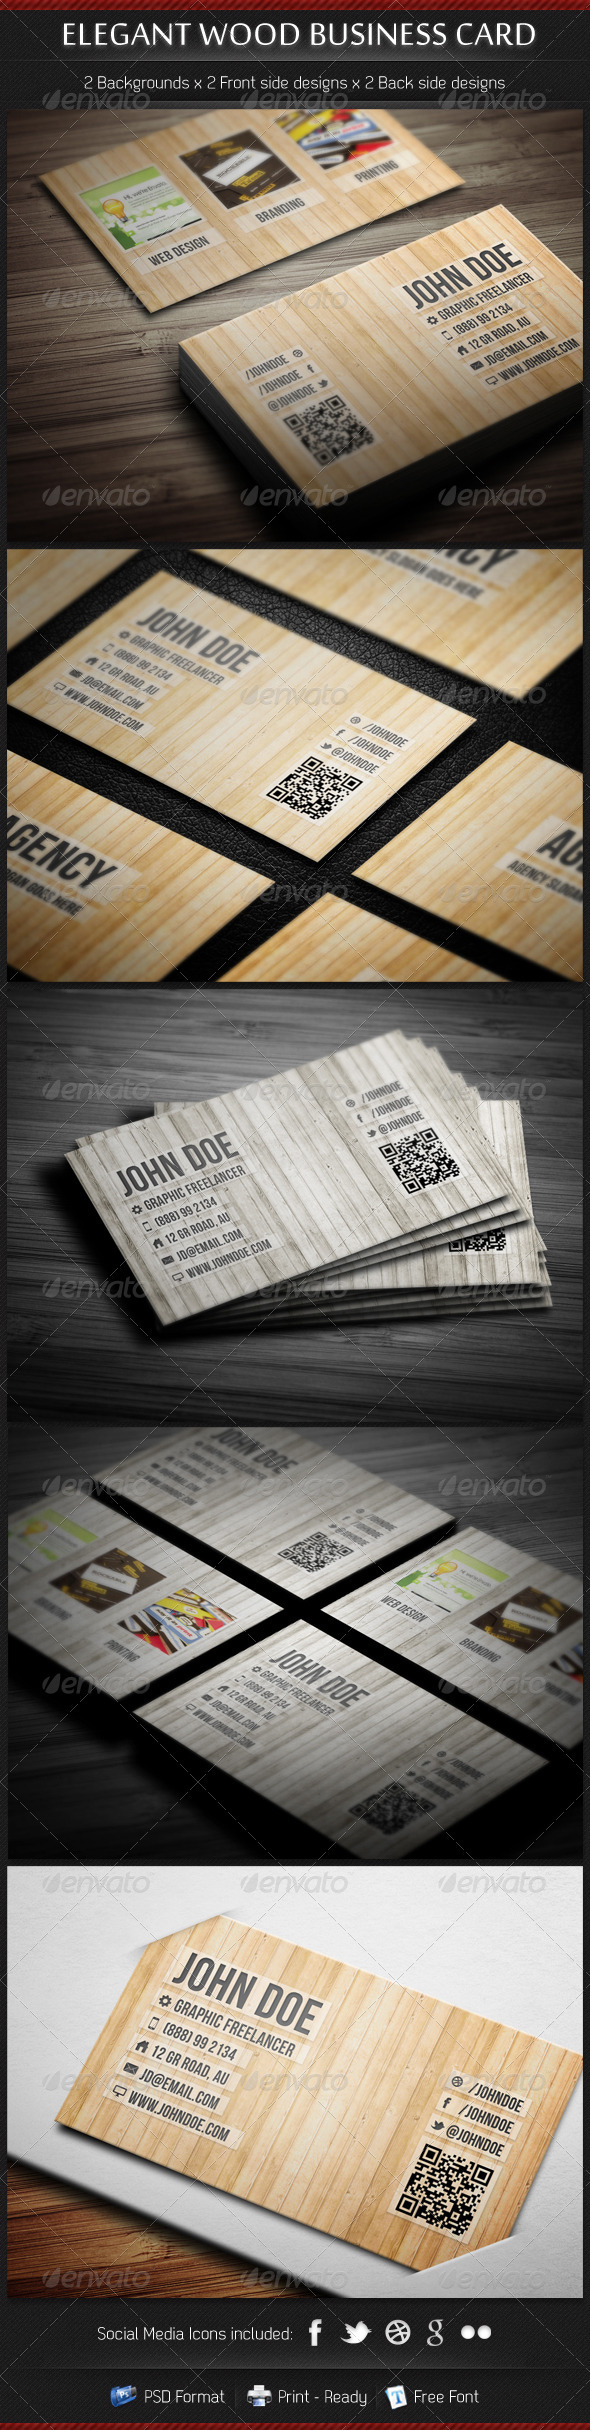 Elegant Wood Business Card Template - Real Objects Business Cards